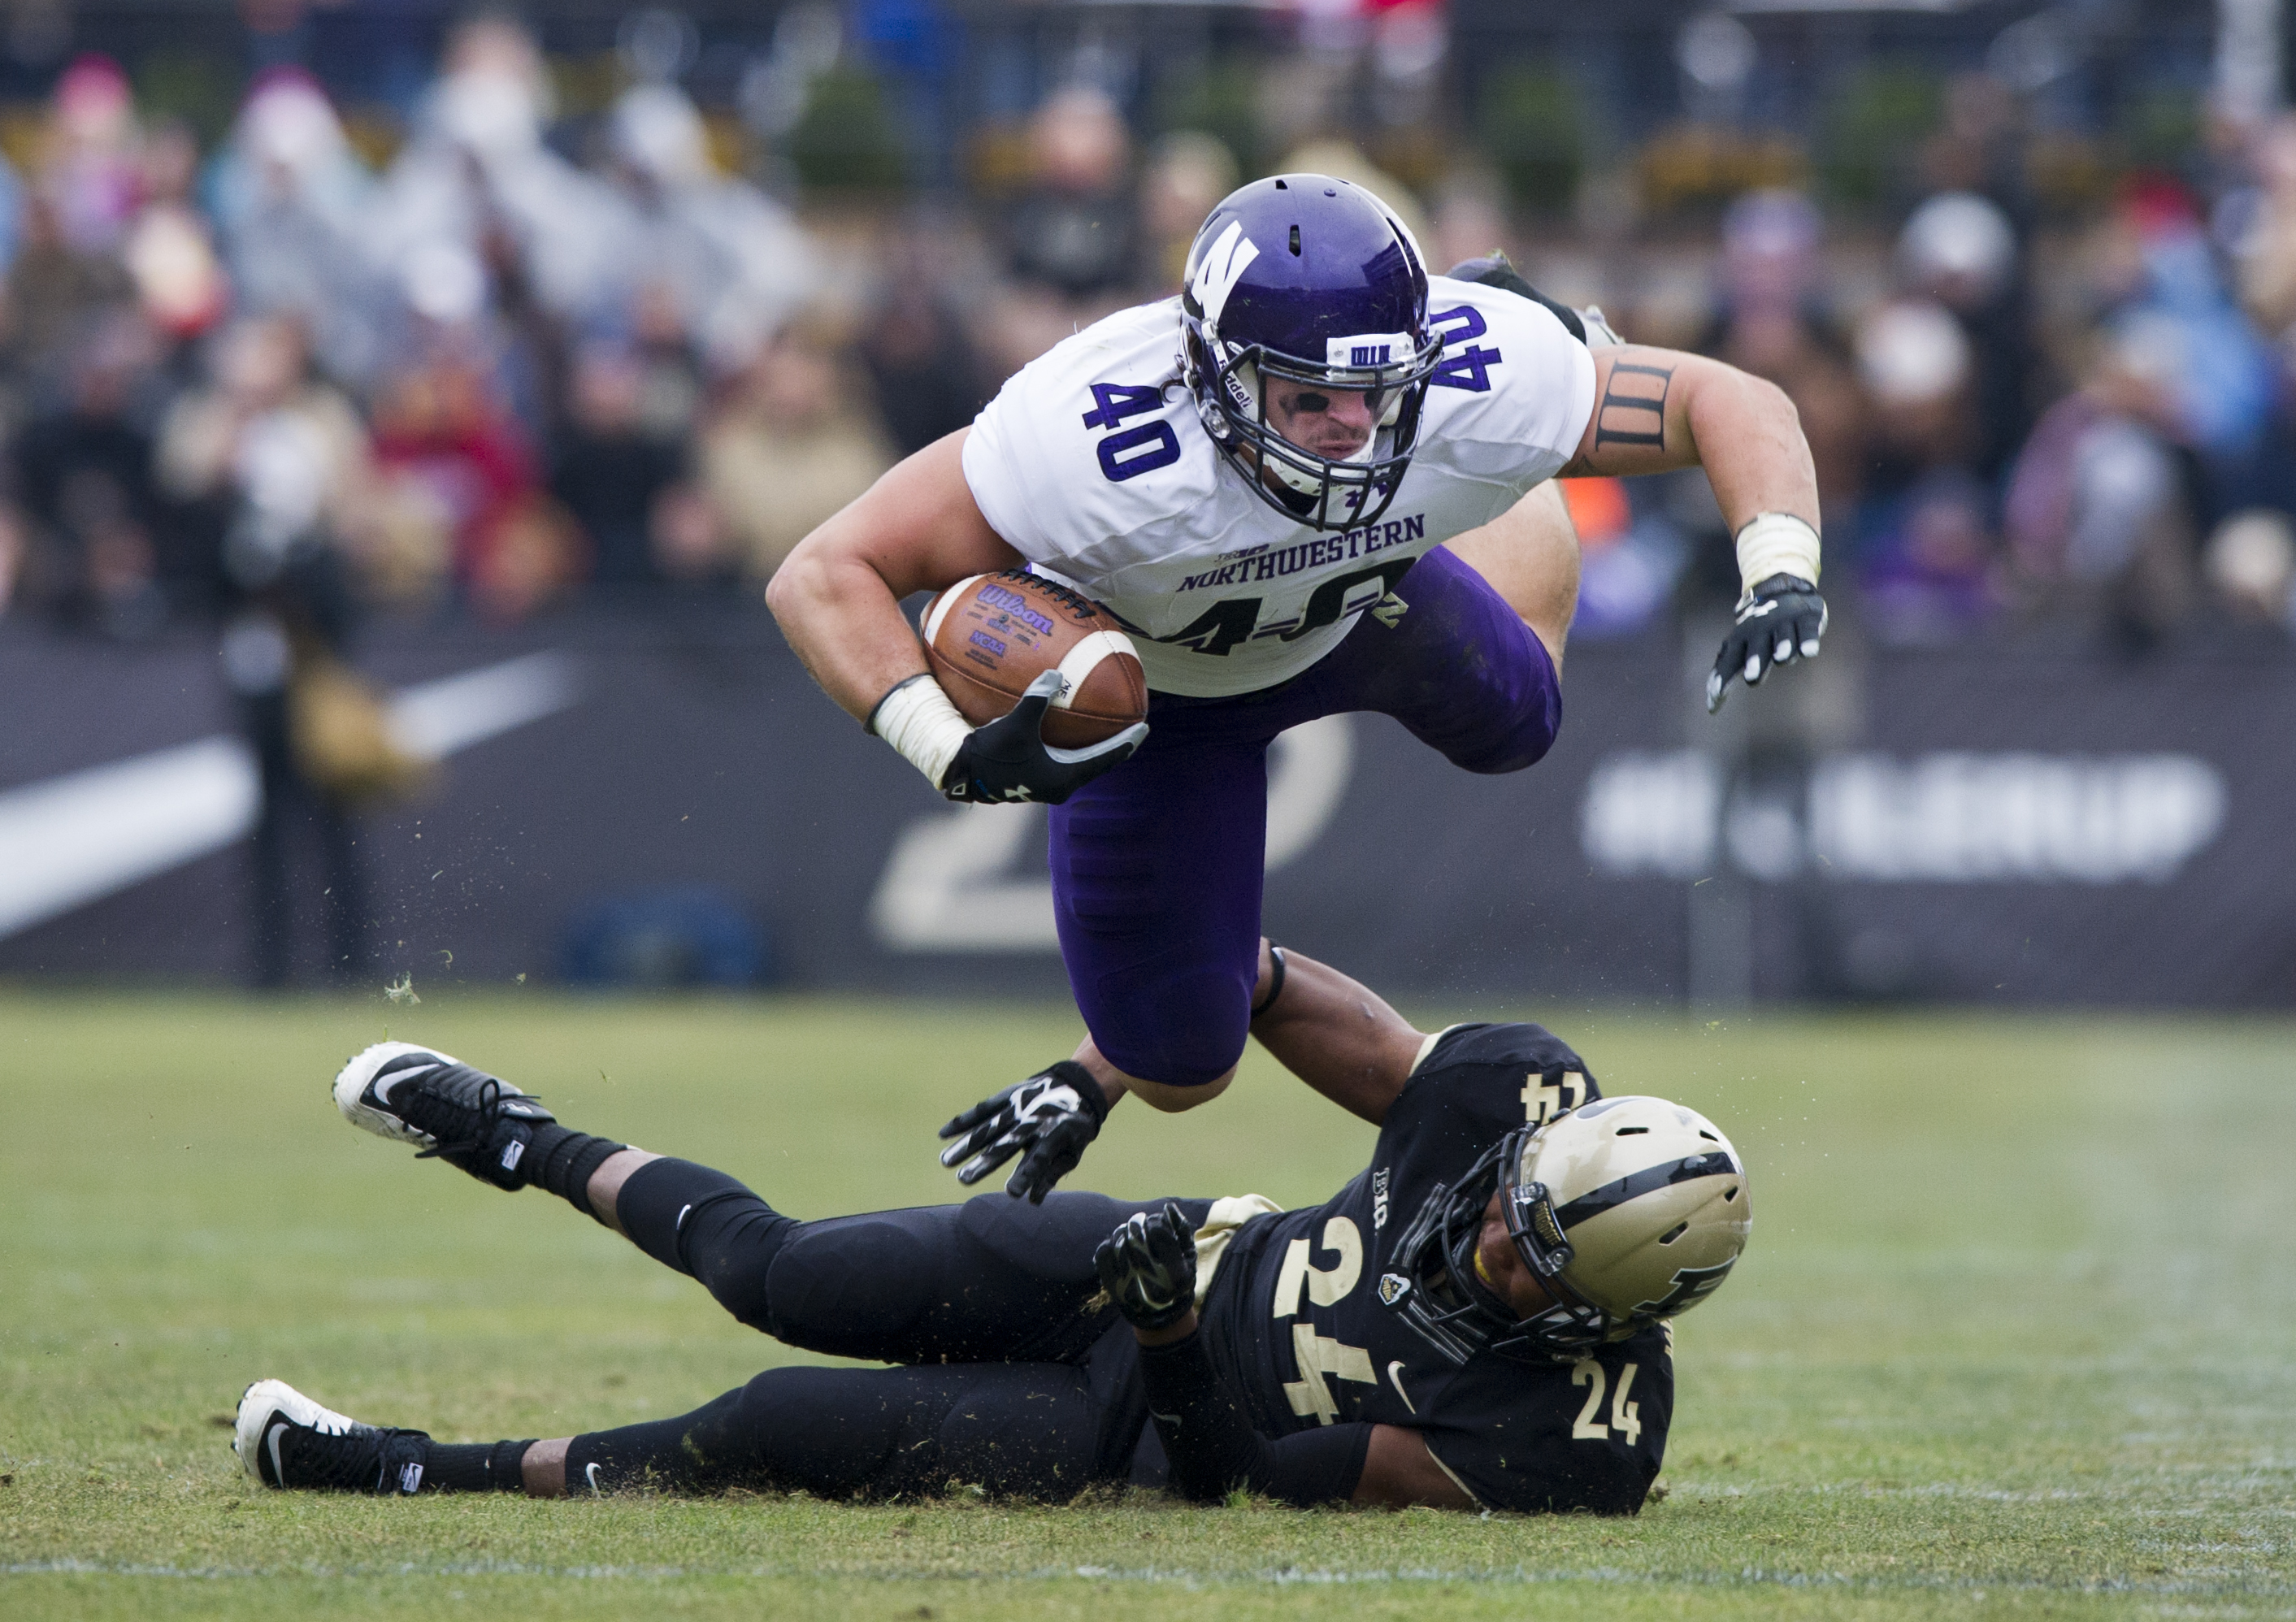 Northwestern's Dan Vitale (40) is tripped up by Purdue's Frankie Williams (24) as he runs the ball during the first half of an NCAA college football game, Saturday, Nov. 22, 2014, in West Lafayette, Ind. (AP Photo/Doug McSchooler)